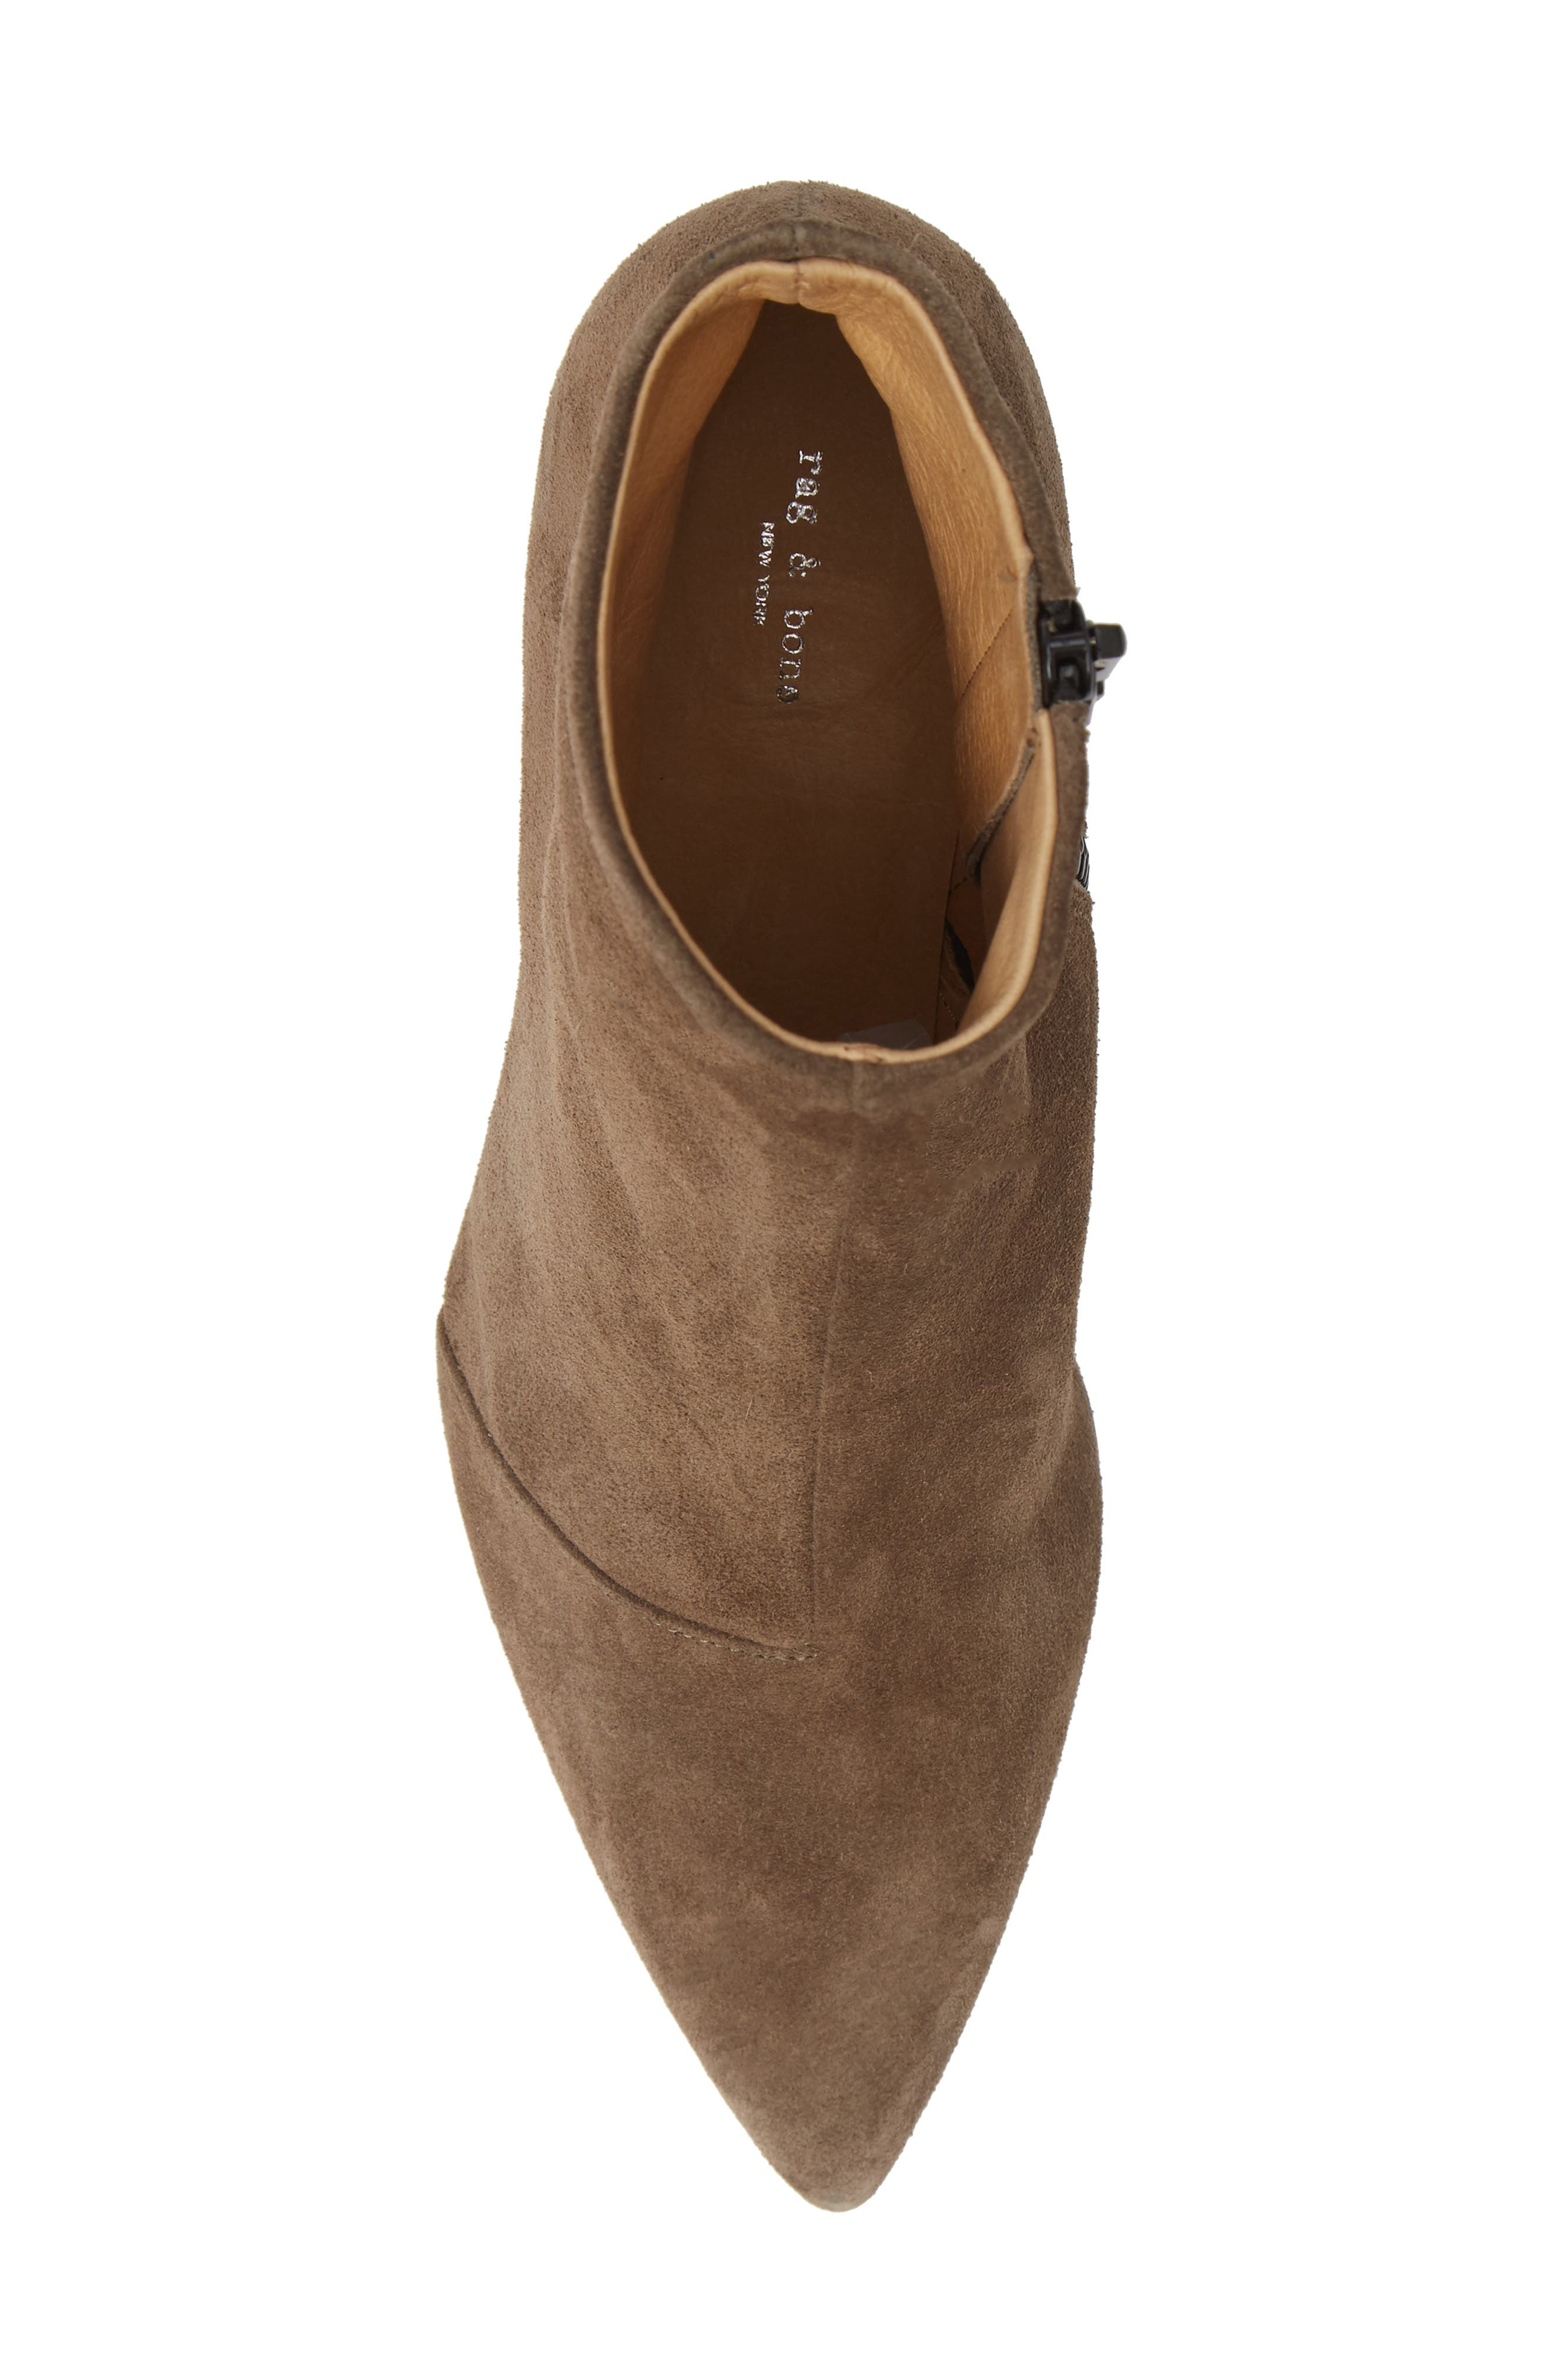 Beha Pointy Toe Bootie,                             Alternate thumbnail 5, color,                             TAUPE SUEDE